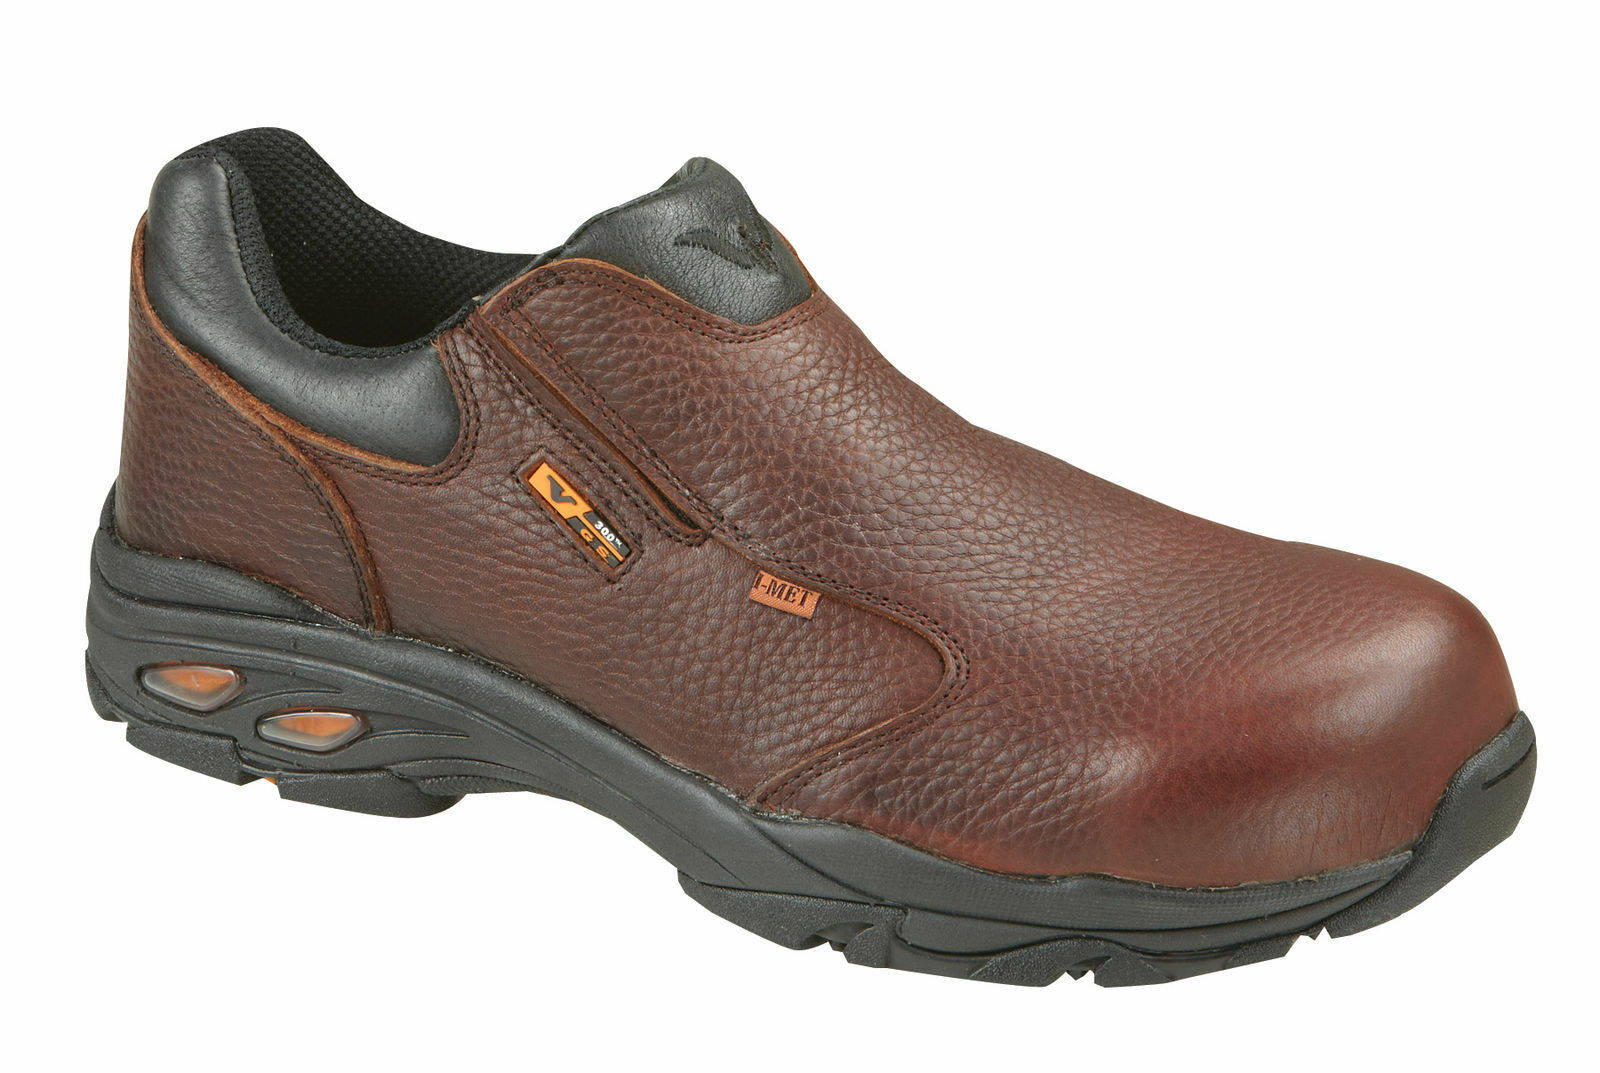 Thgoldgood 804-4320 I-MET2 Slip-On Internal Metatarsal Composite Safety Toe shoes